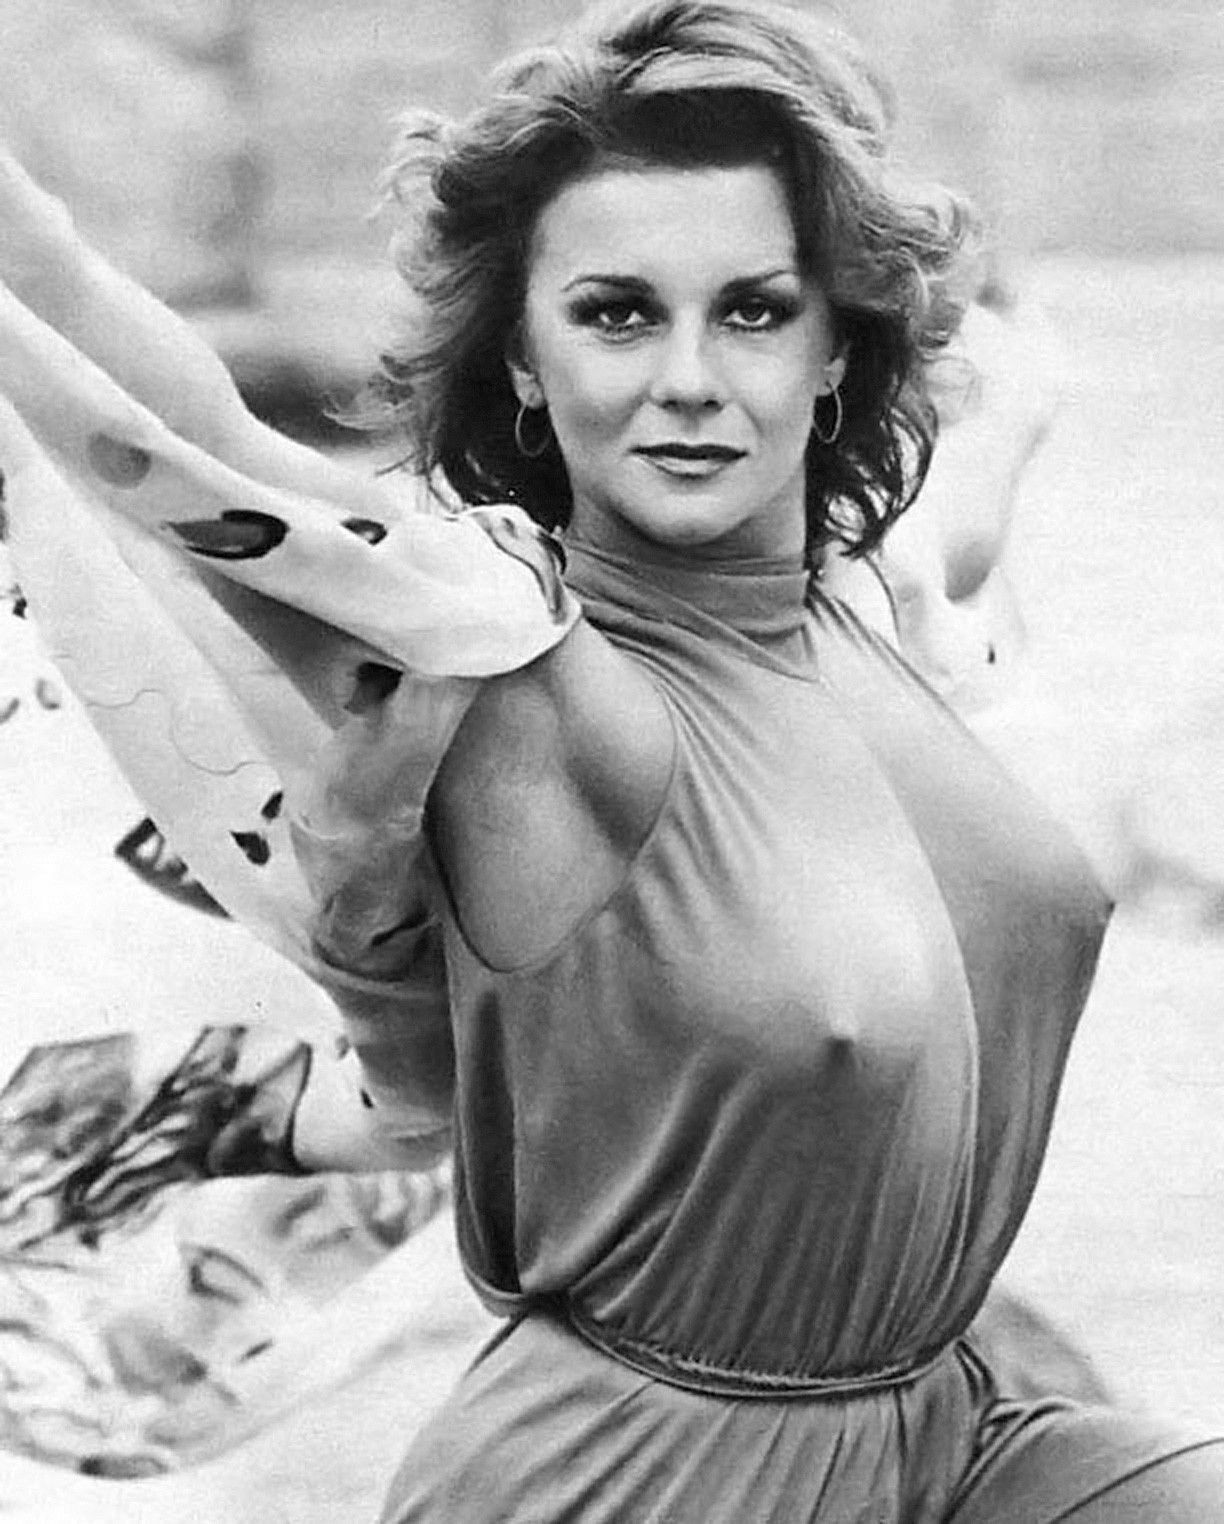 Nude pictures of ann margret